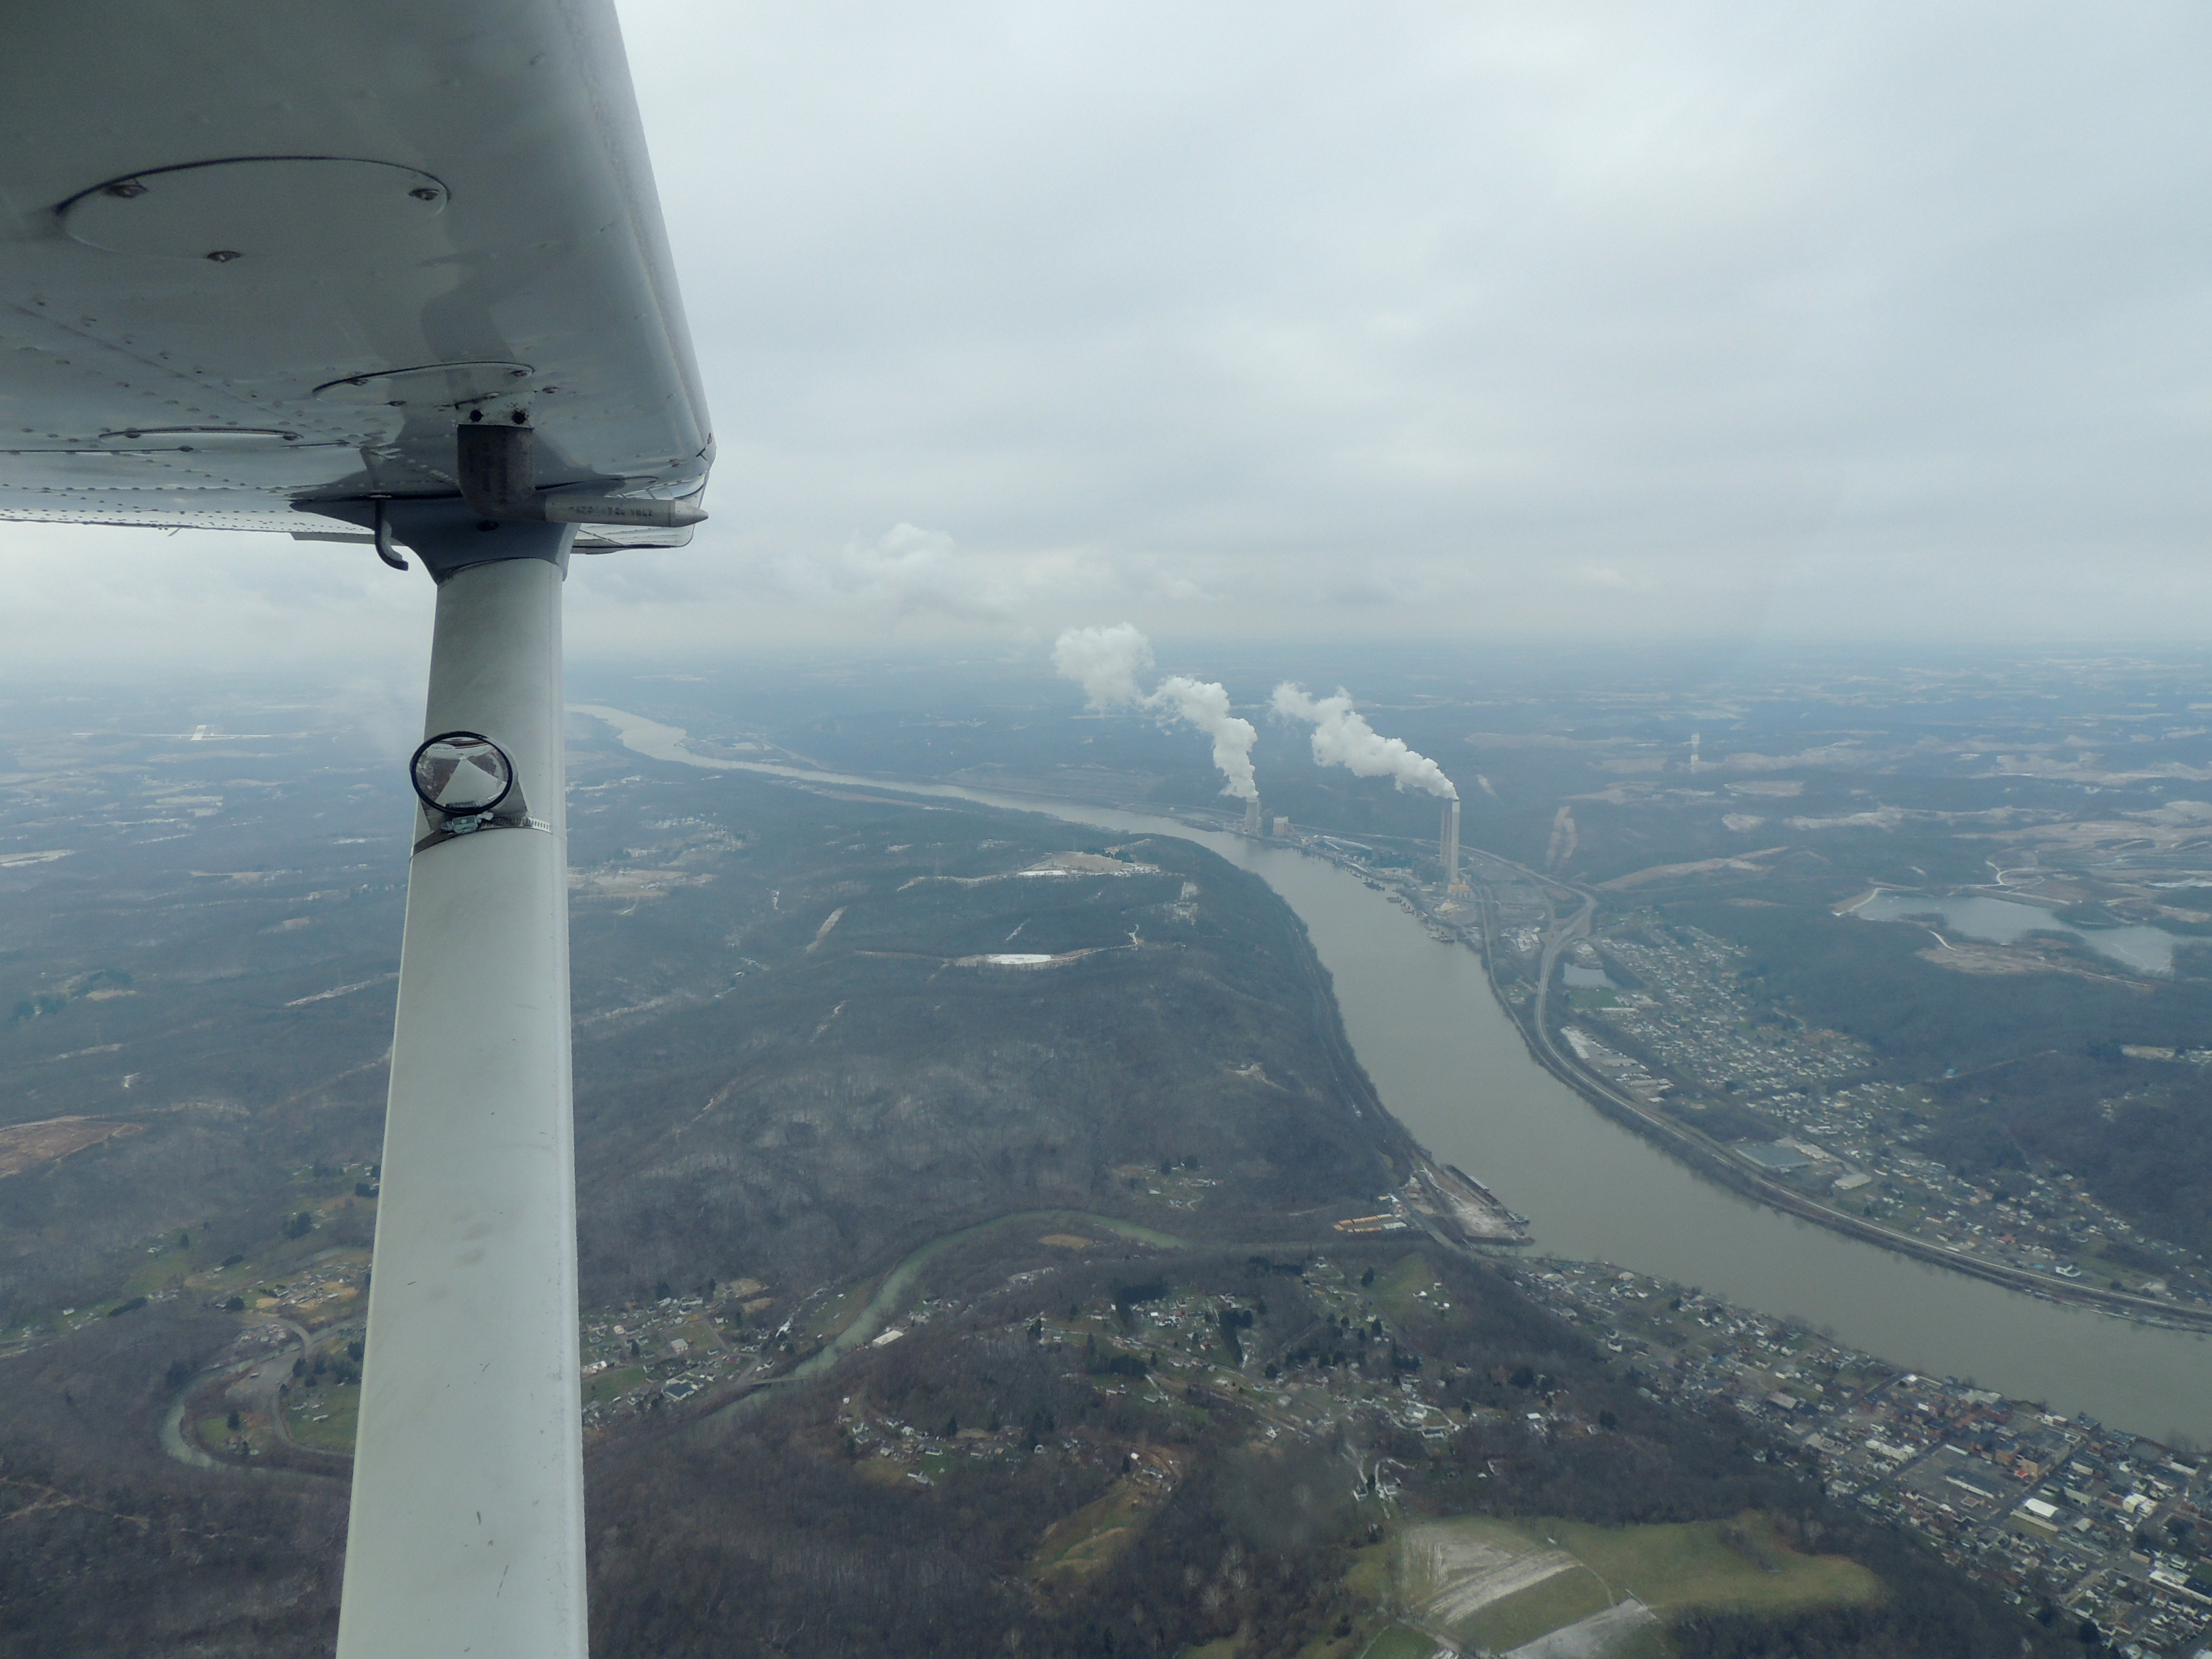 Heading over the Ohio River at 4000 feet